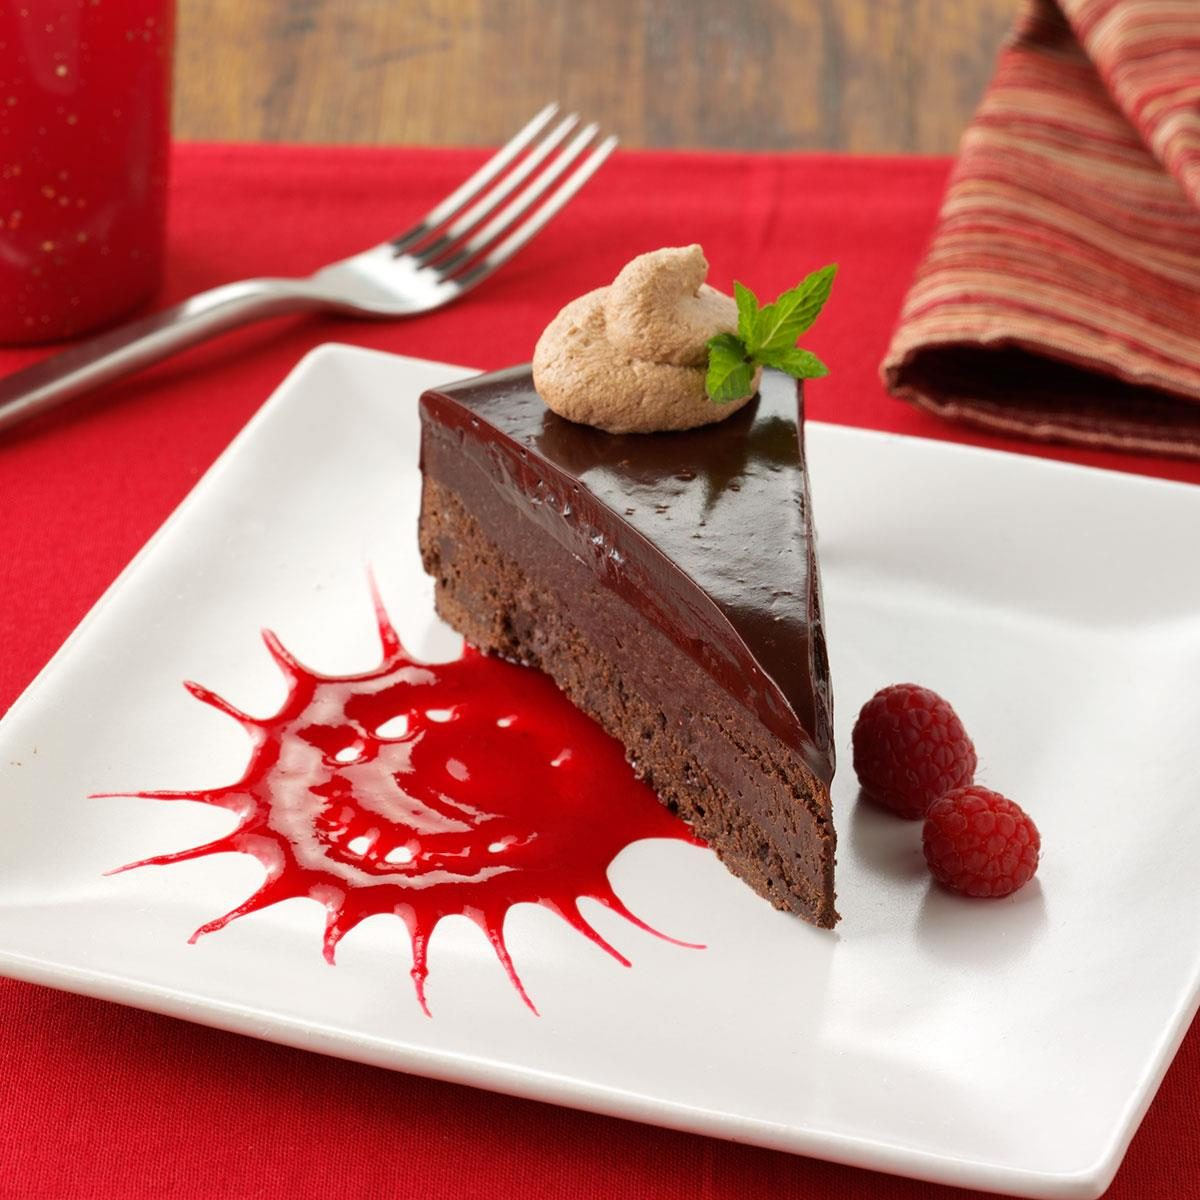 Flourless Chocolate Cake With Chocolate Mousse And Raspberry Sauce